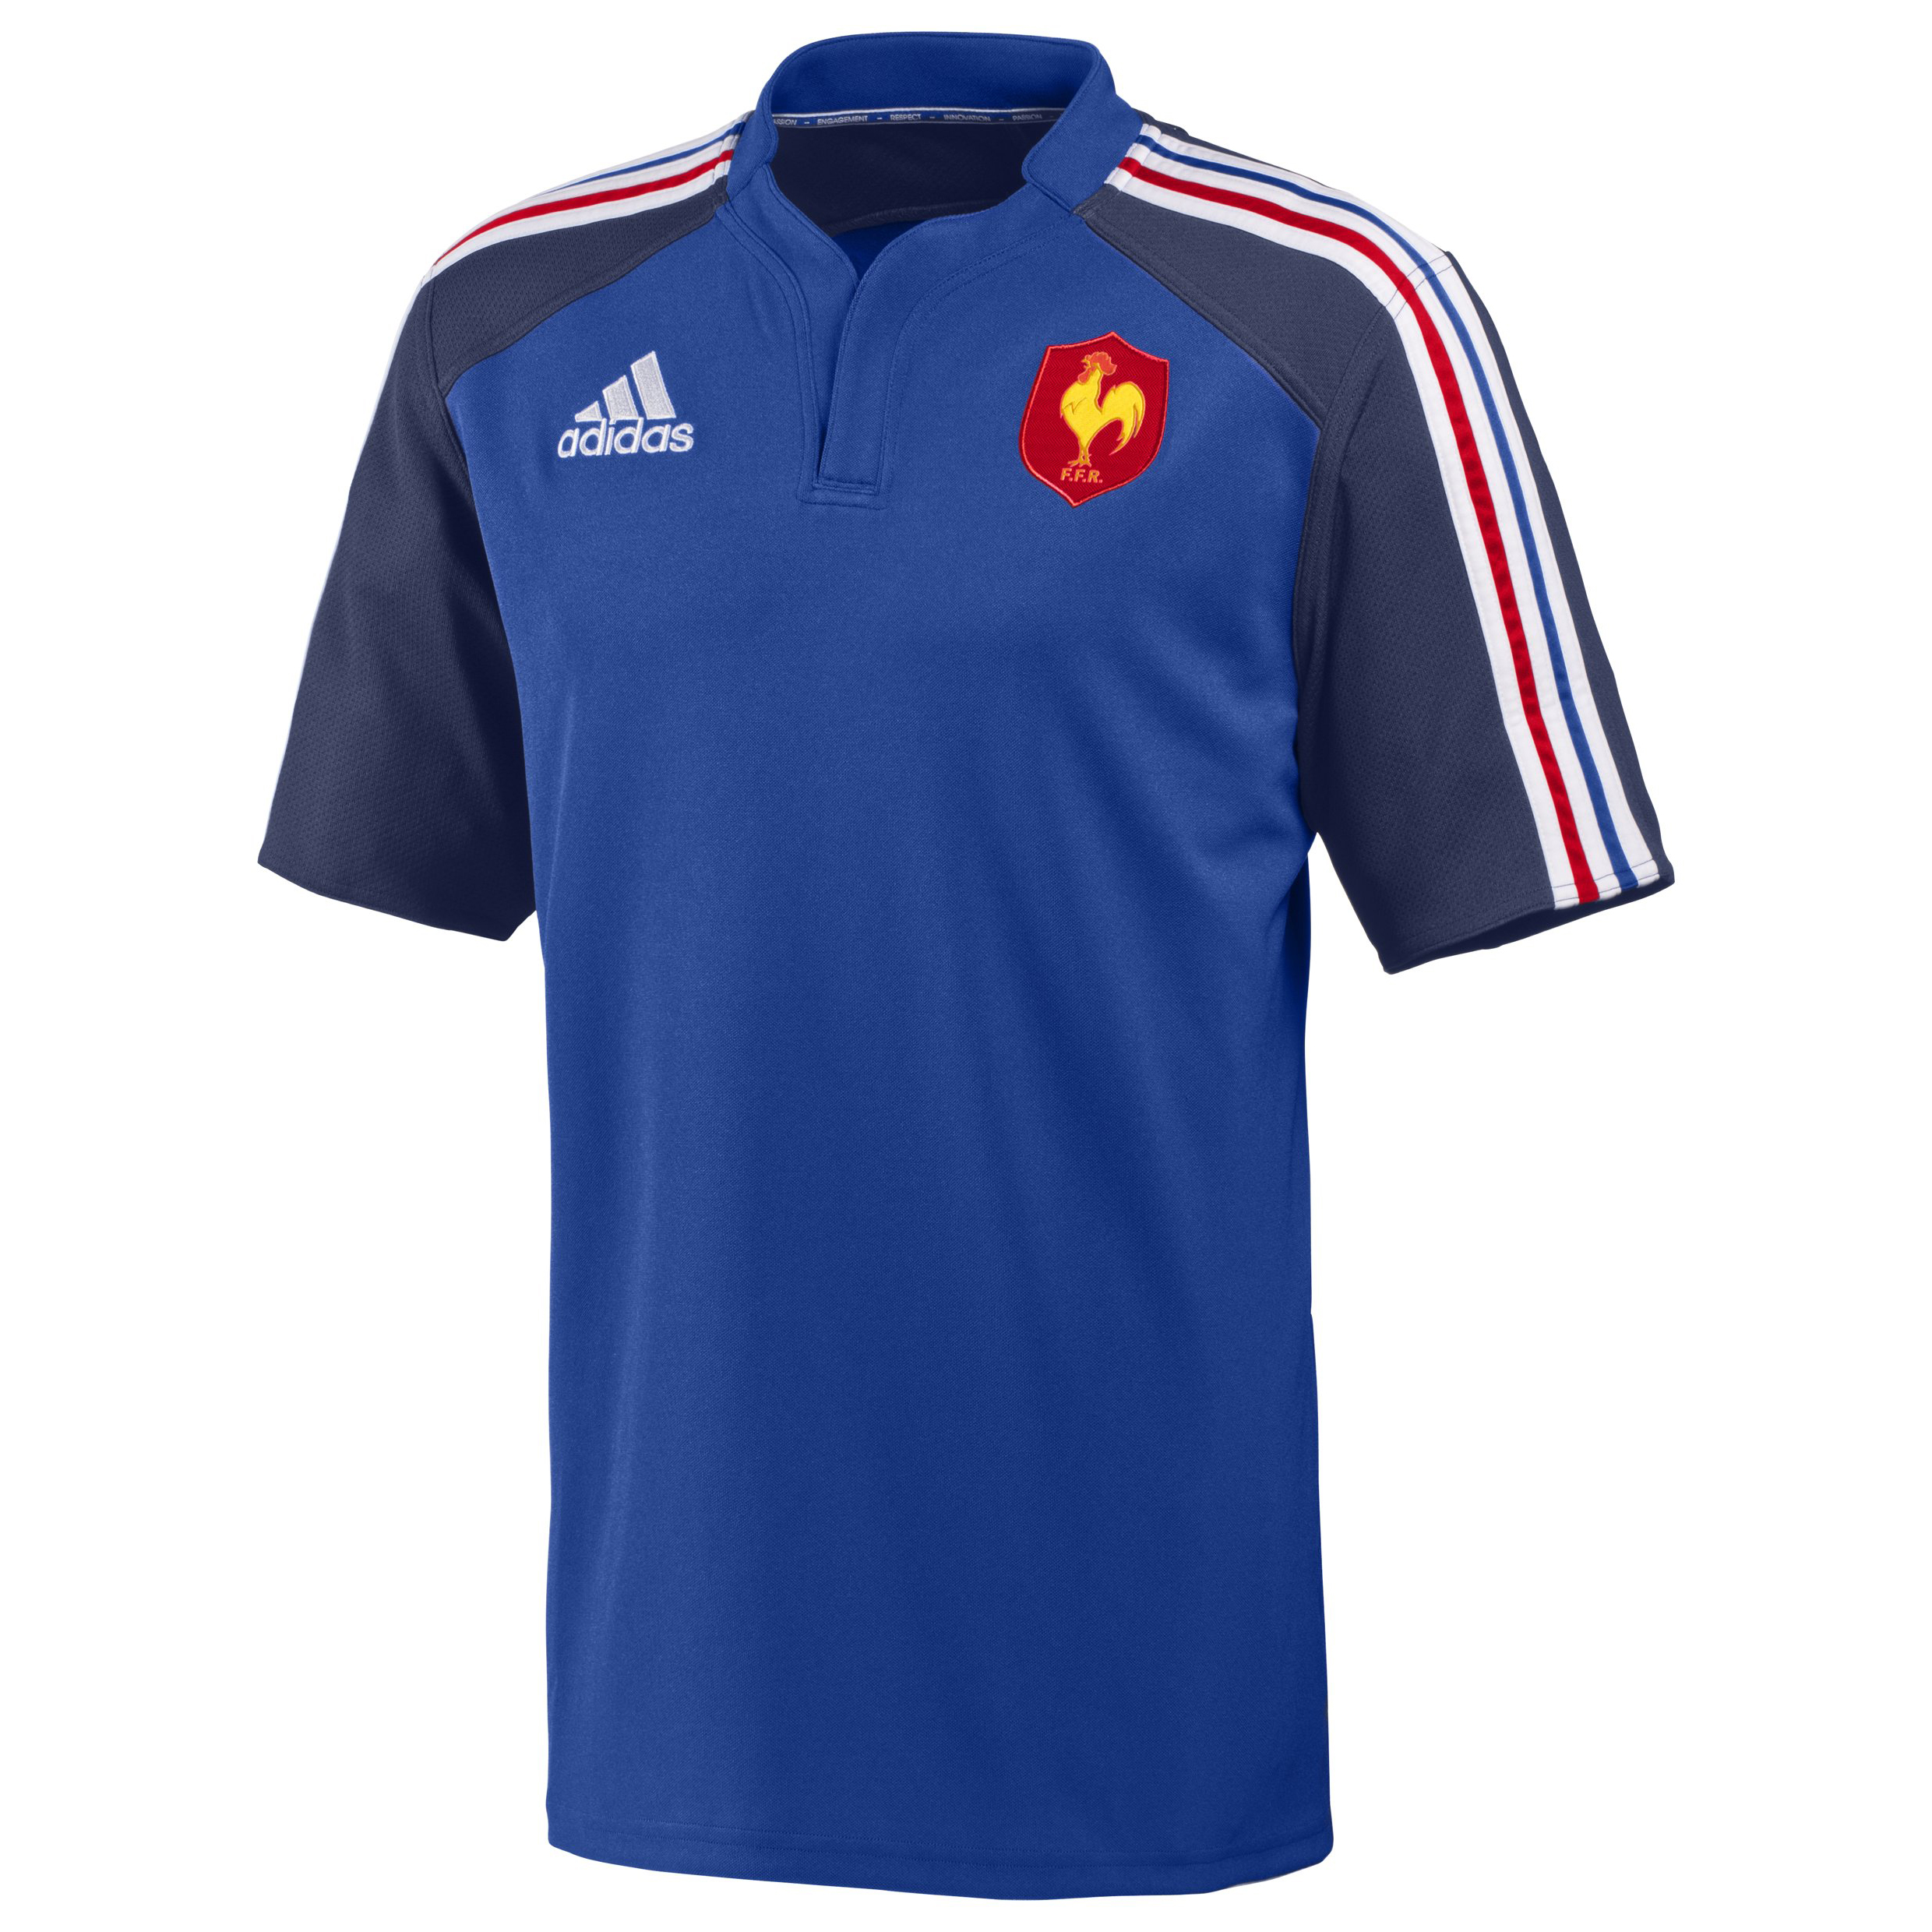 France Rugby Training Jersey - True Blue/New Navy/White/Poppy